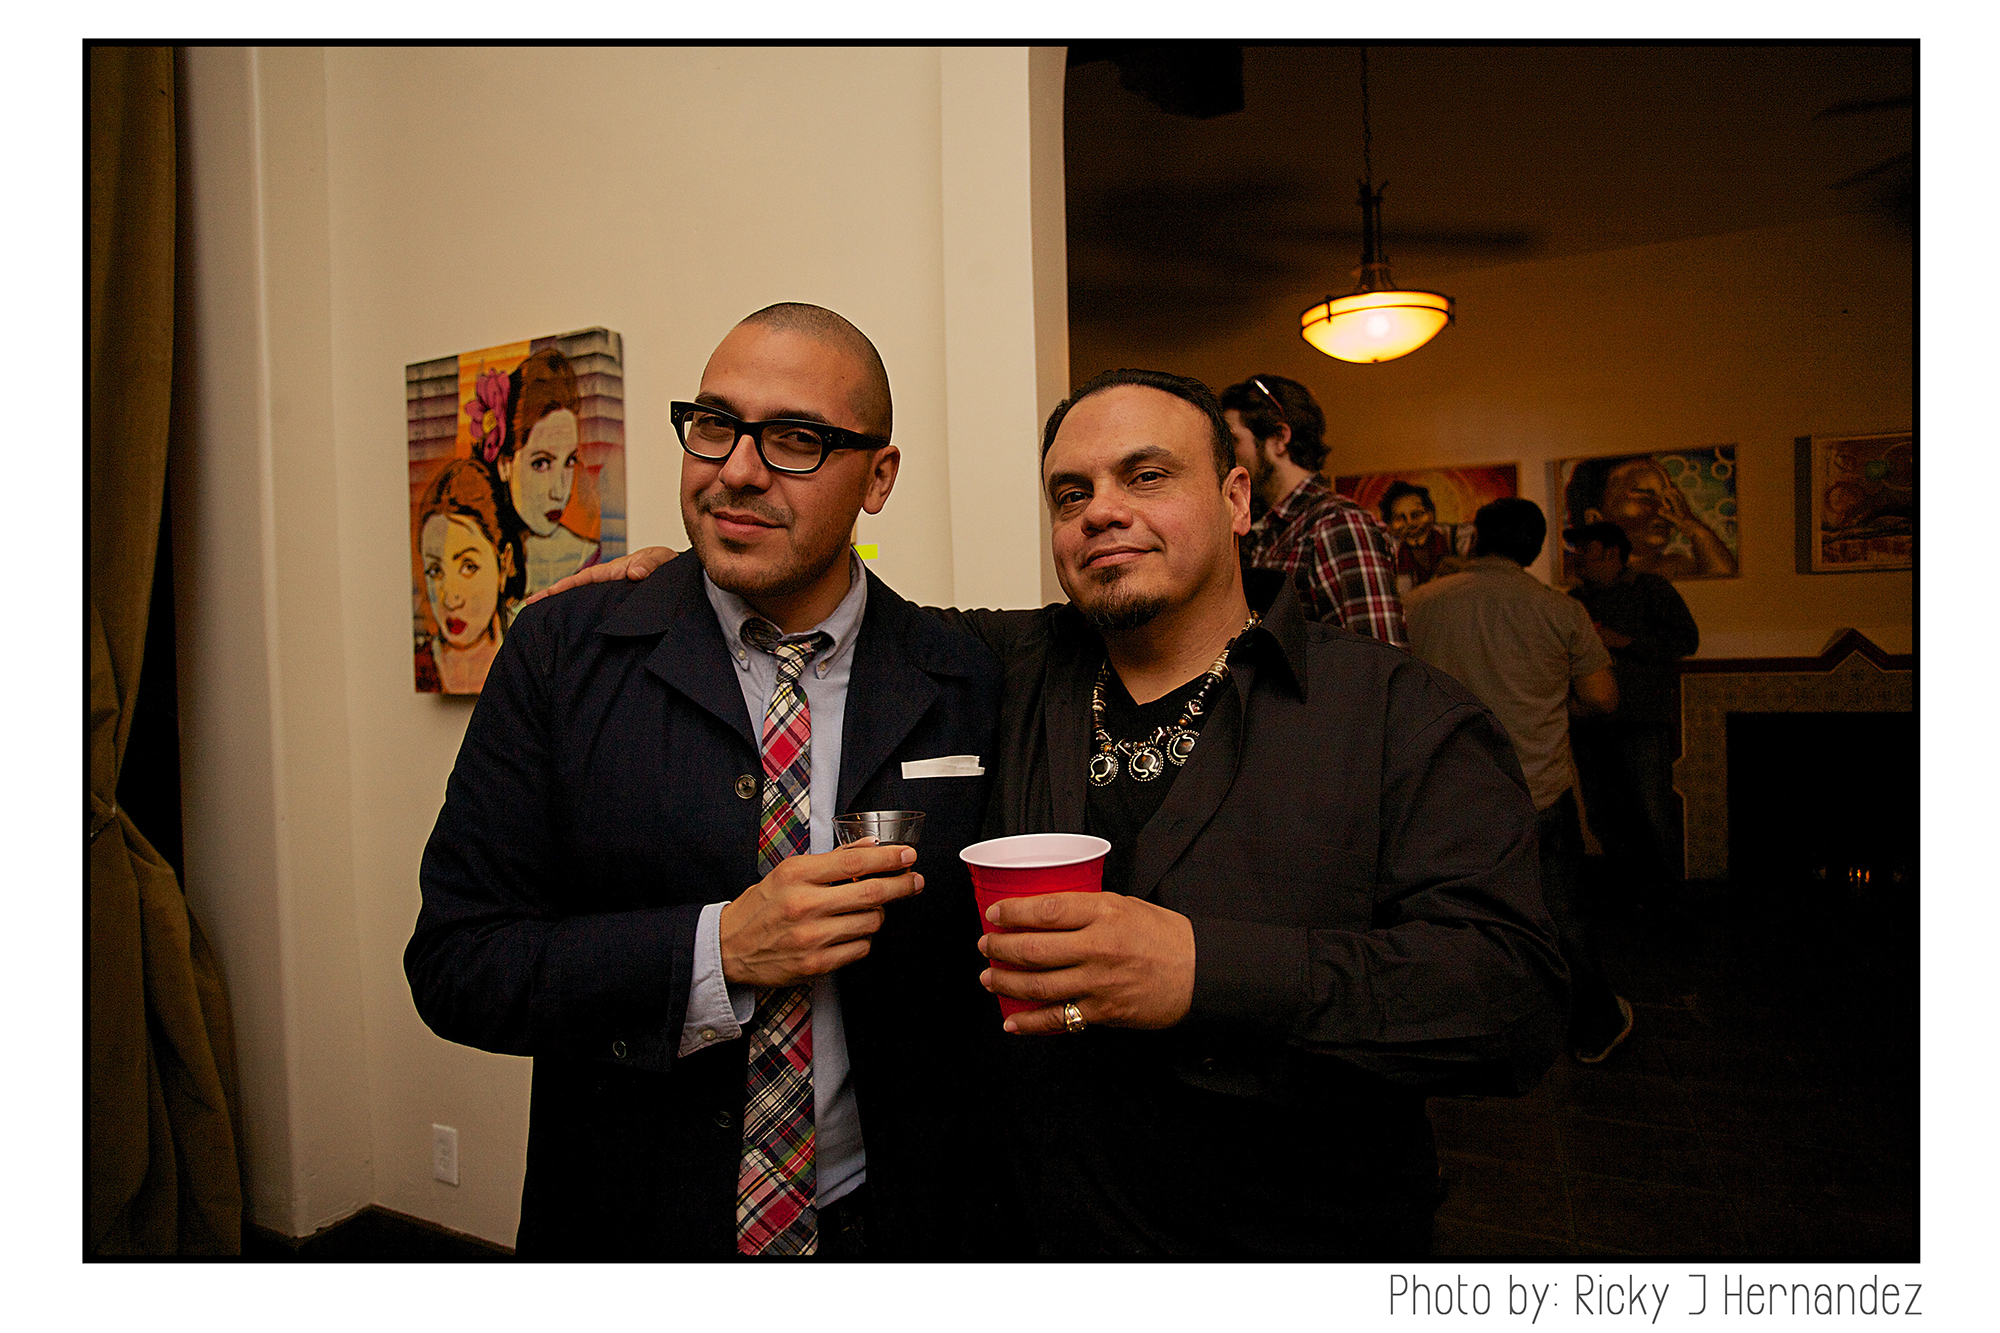 Ricky-J-Hernandez-photography-Oh-poop-I-have-Lupus-art-show-for-Delia-sweet-tooth-in-Privy-studio-Los-Angeles-CA-056